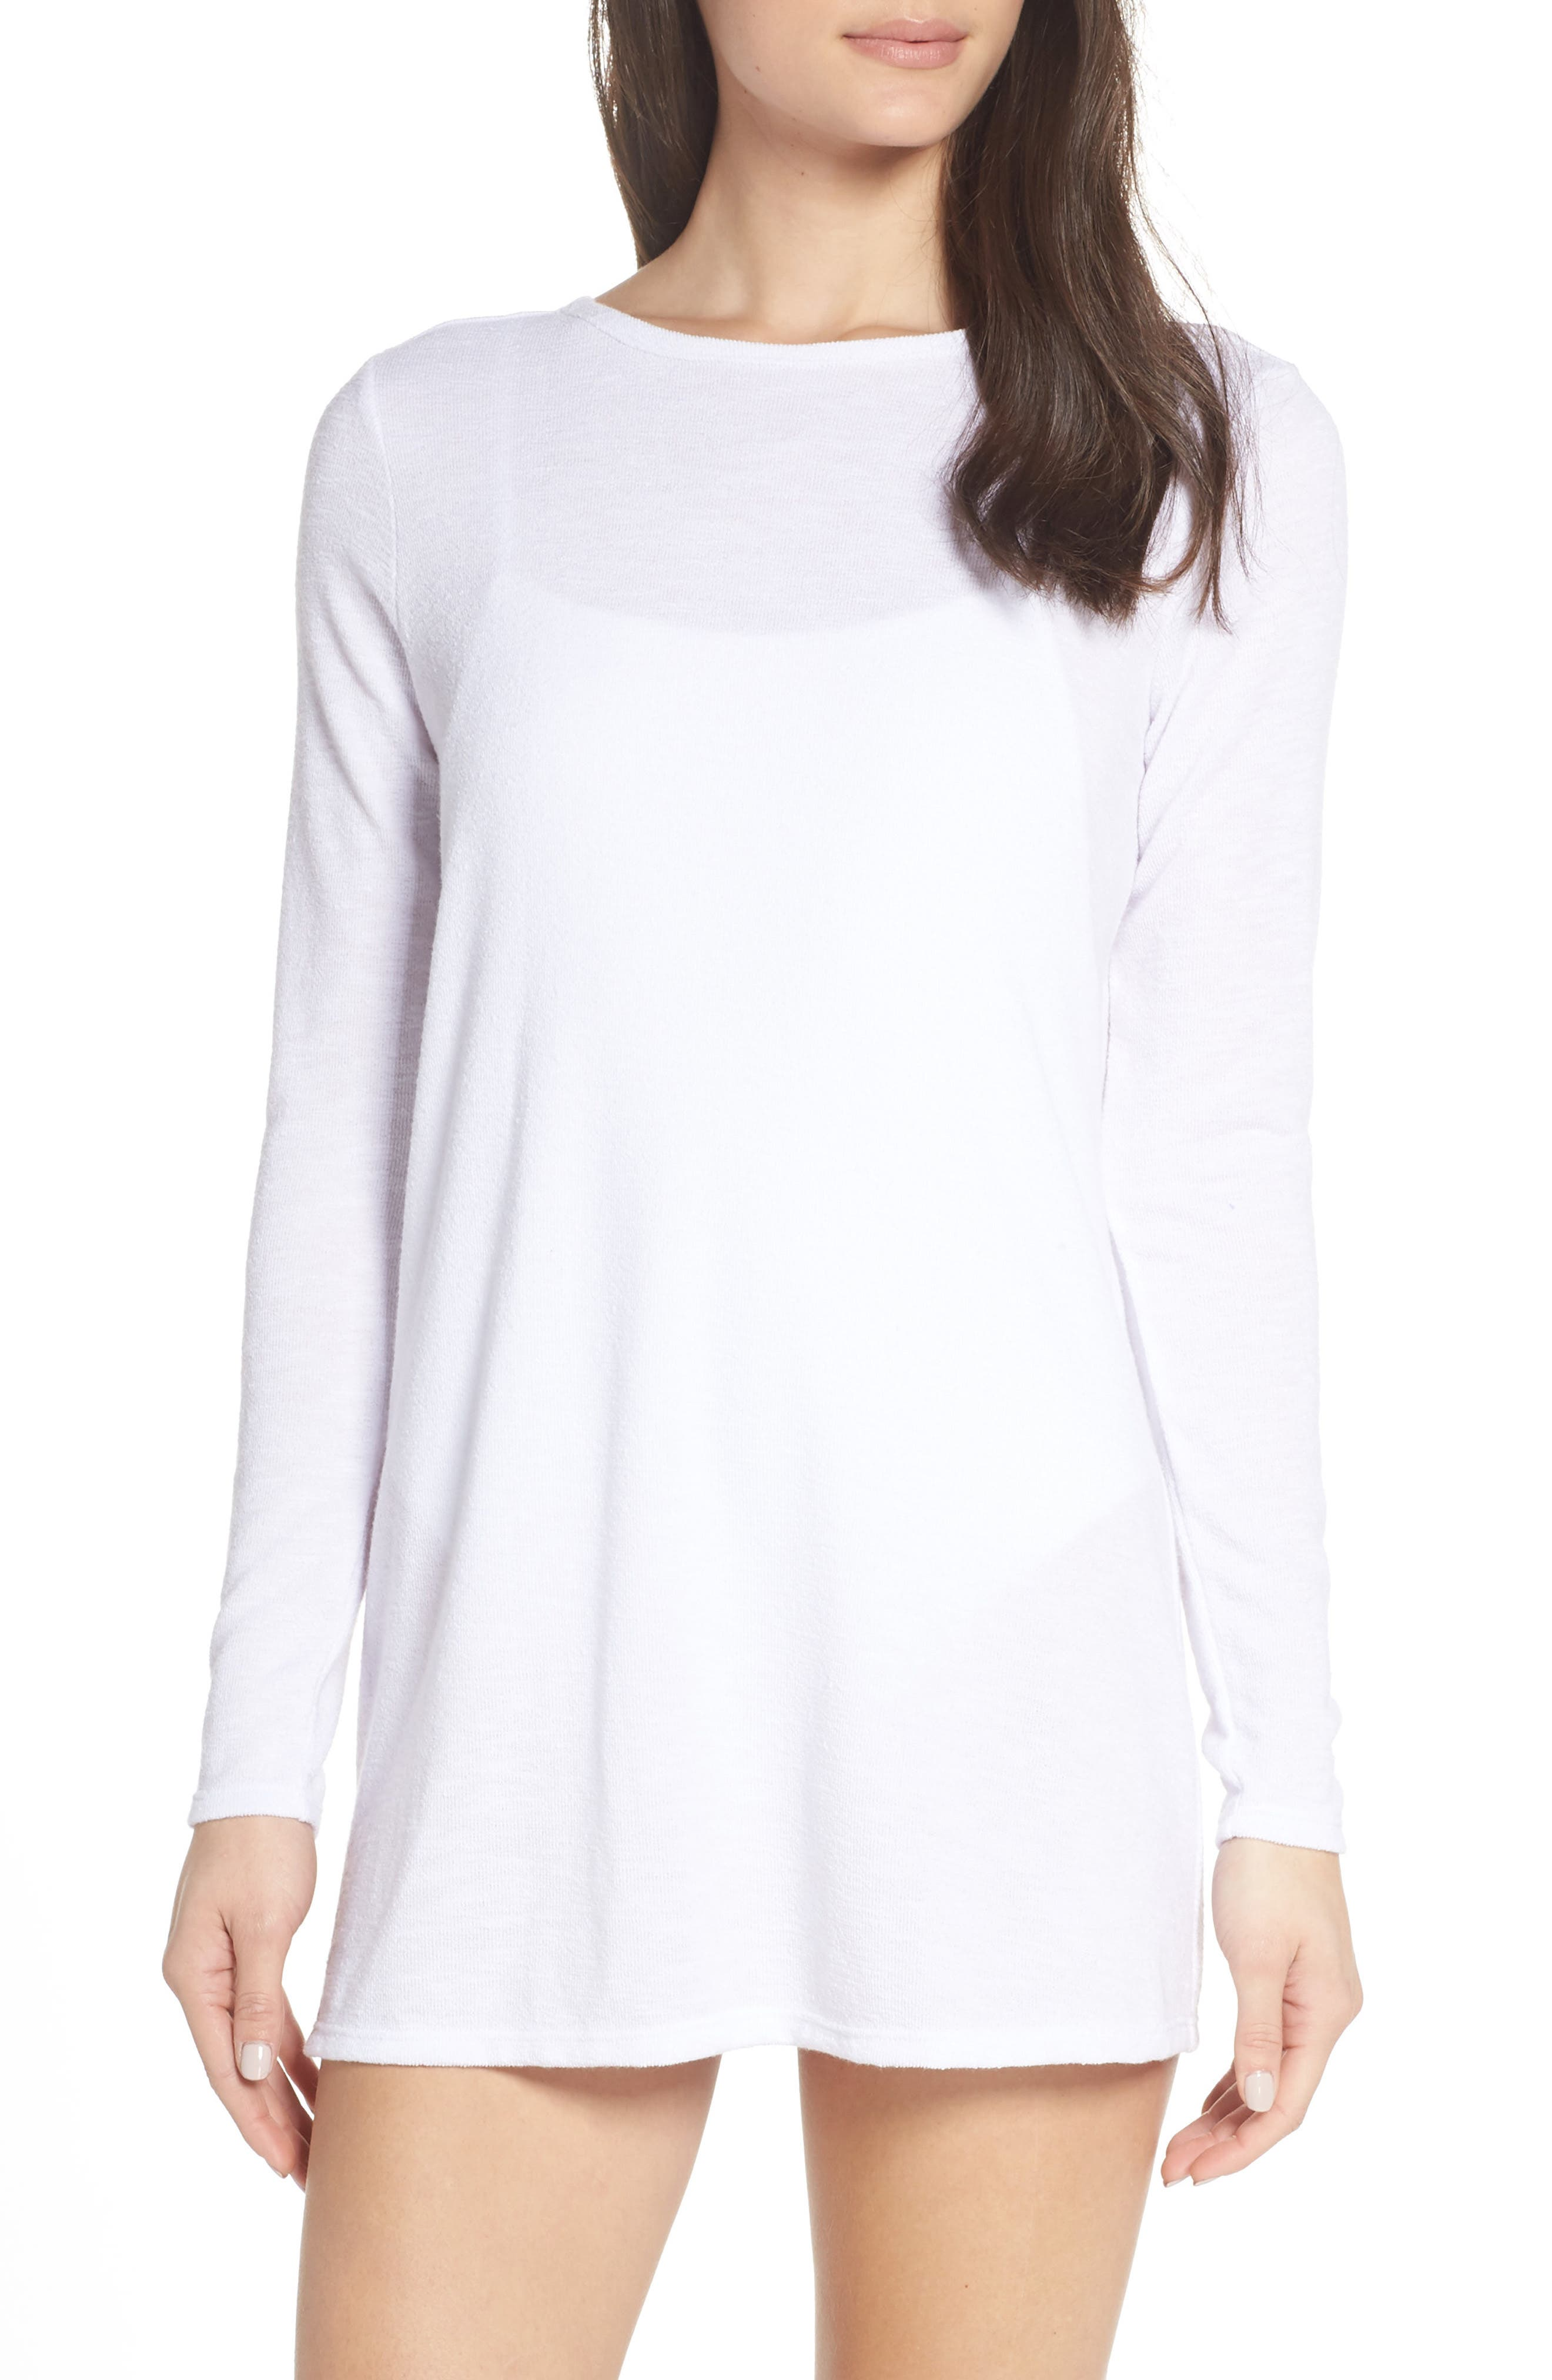 SOMETHING NAVY, Isla Cover-Up, Main thumbnail 1, color, WHITE